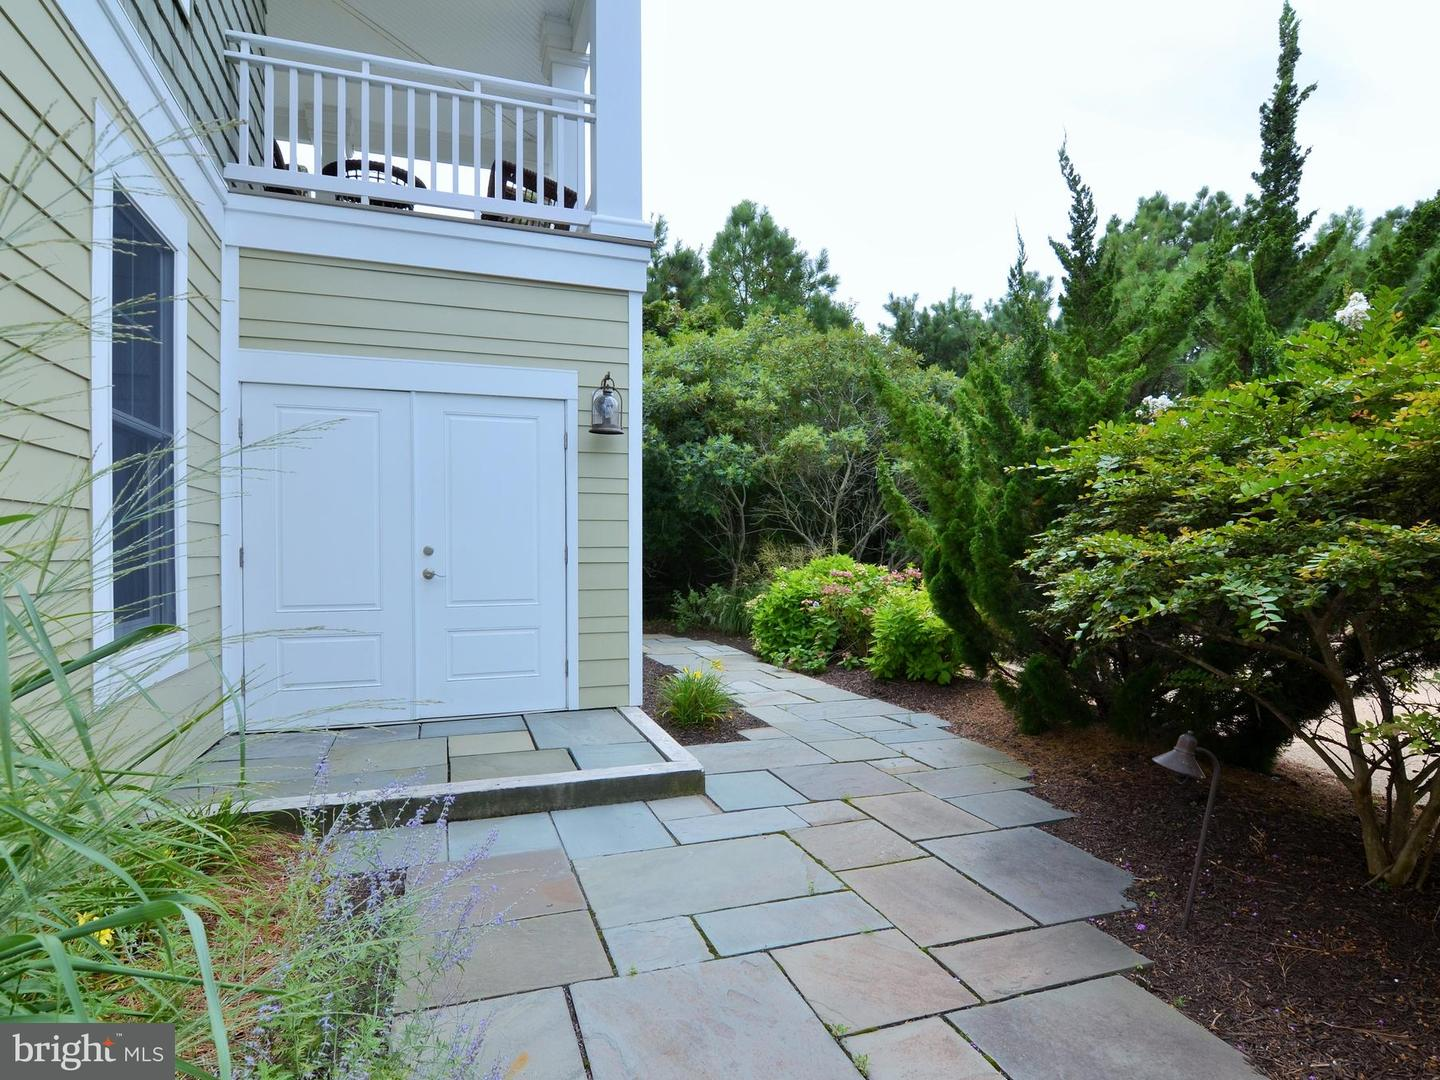 1002293530-300500804873-2018-09-25-15-08-24 31 Hall Ave | Rehoboth Beach, DE Real Estate For Sale | MLS# 1002293530  - 1st Choice Properties